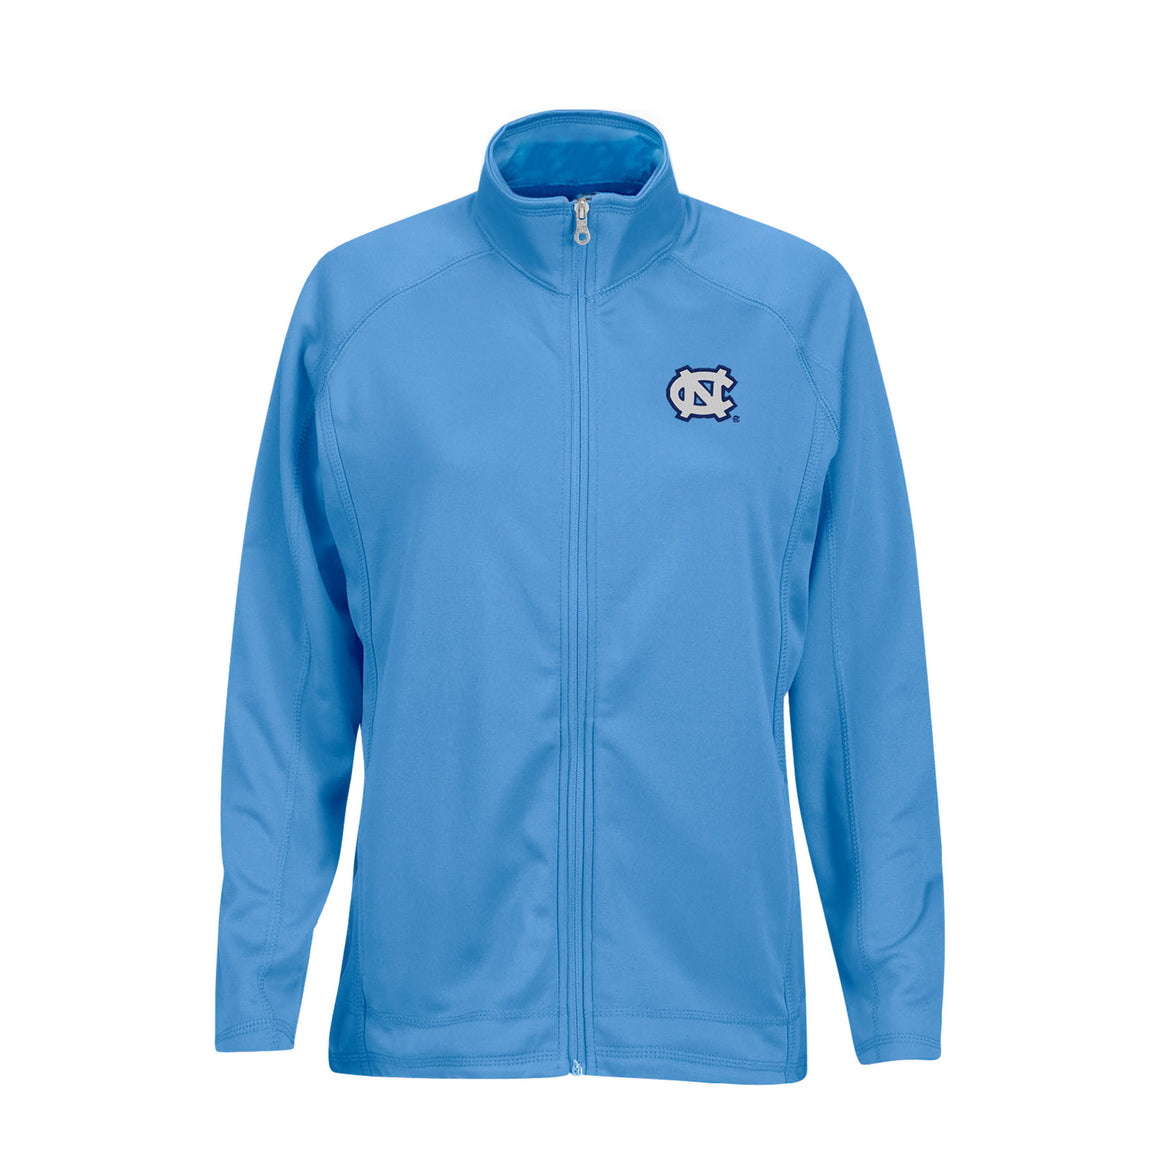 Carolina Blue Zipper Jacket